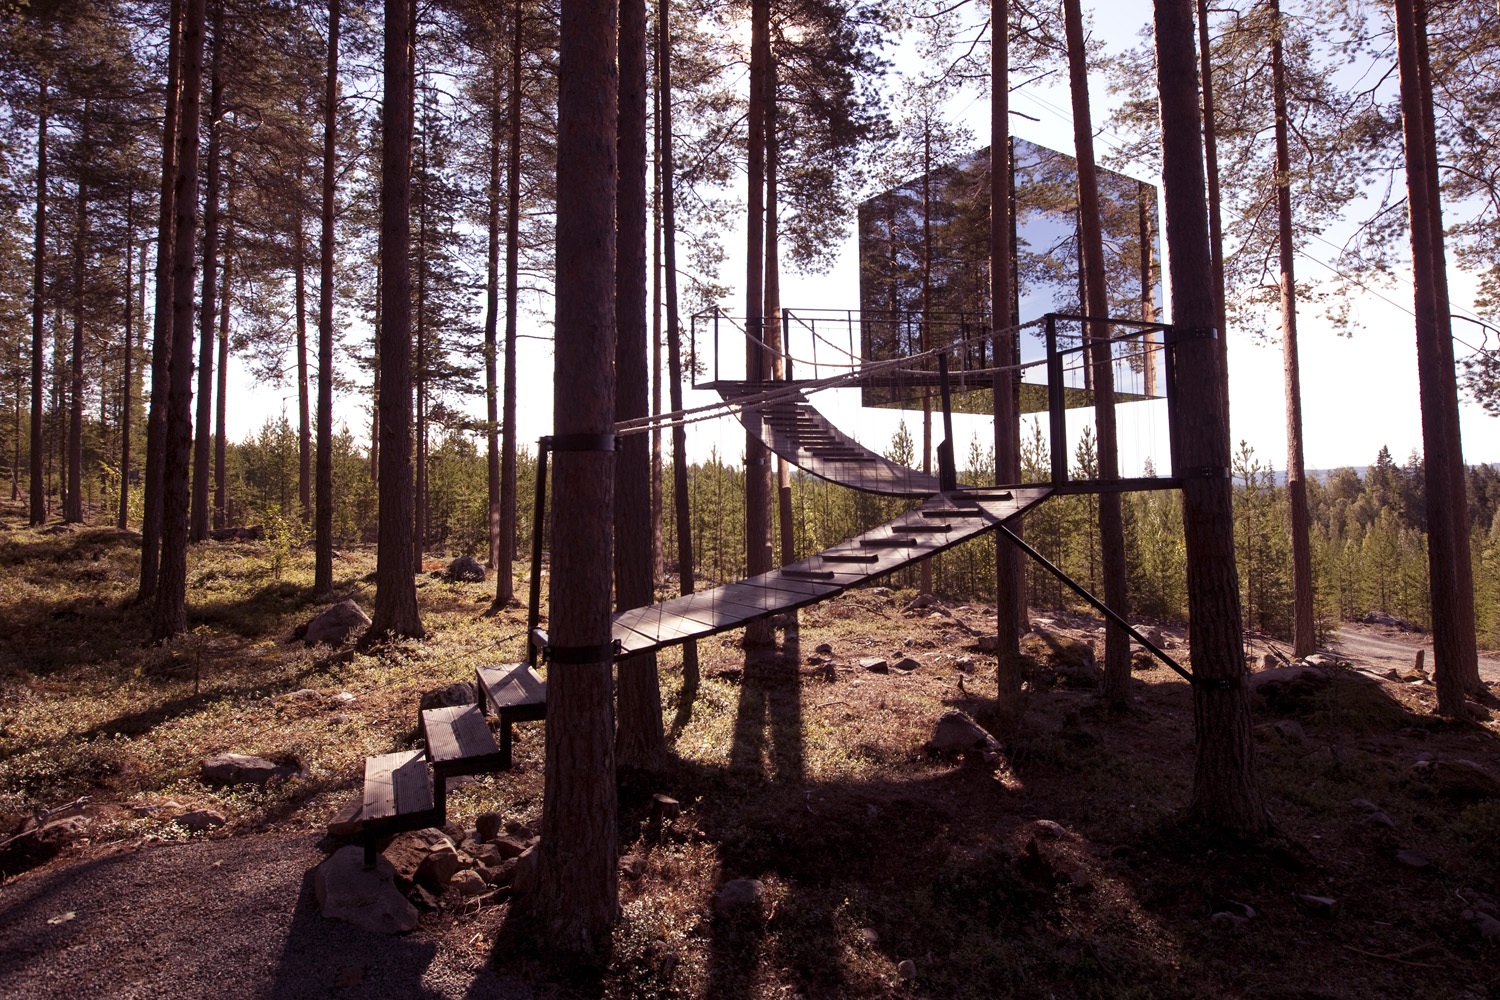 mirror cube creditPeter Lundstrom WDO www.treehotel.se  Top 5 Glamping Hotels Around the World